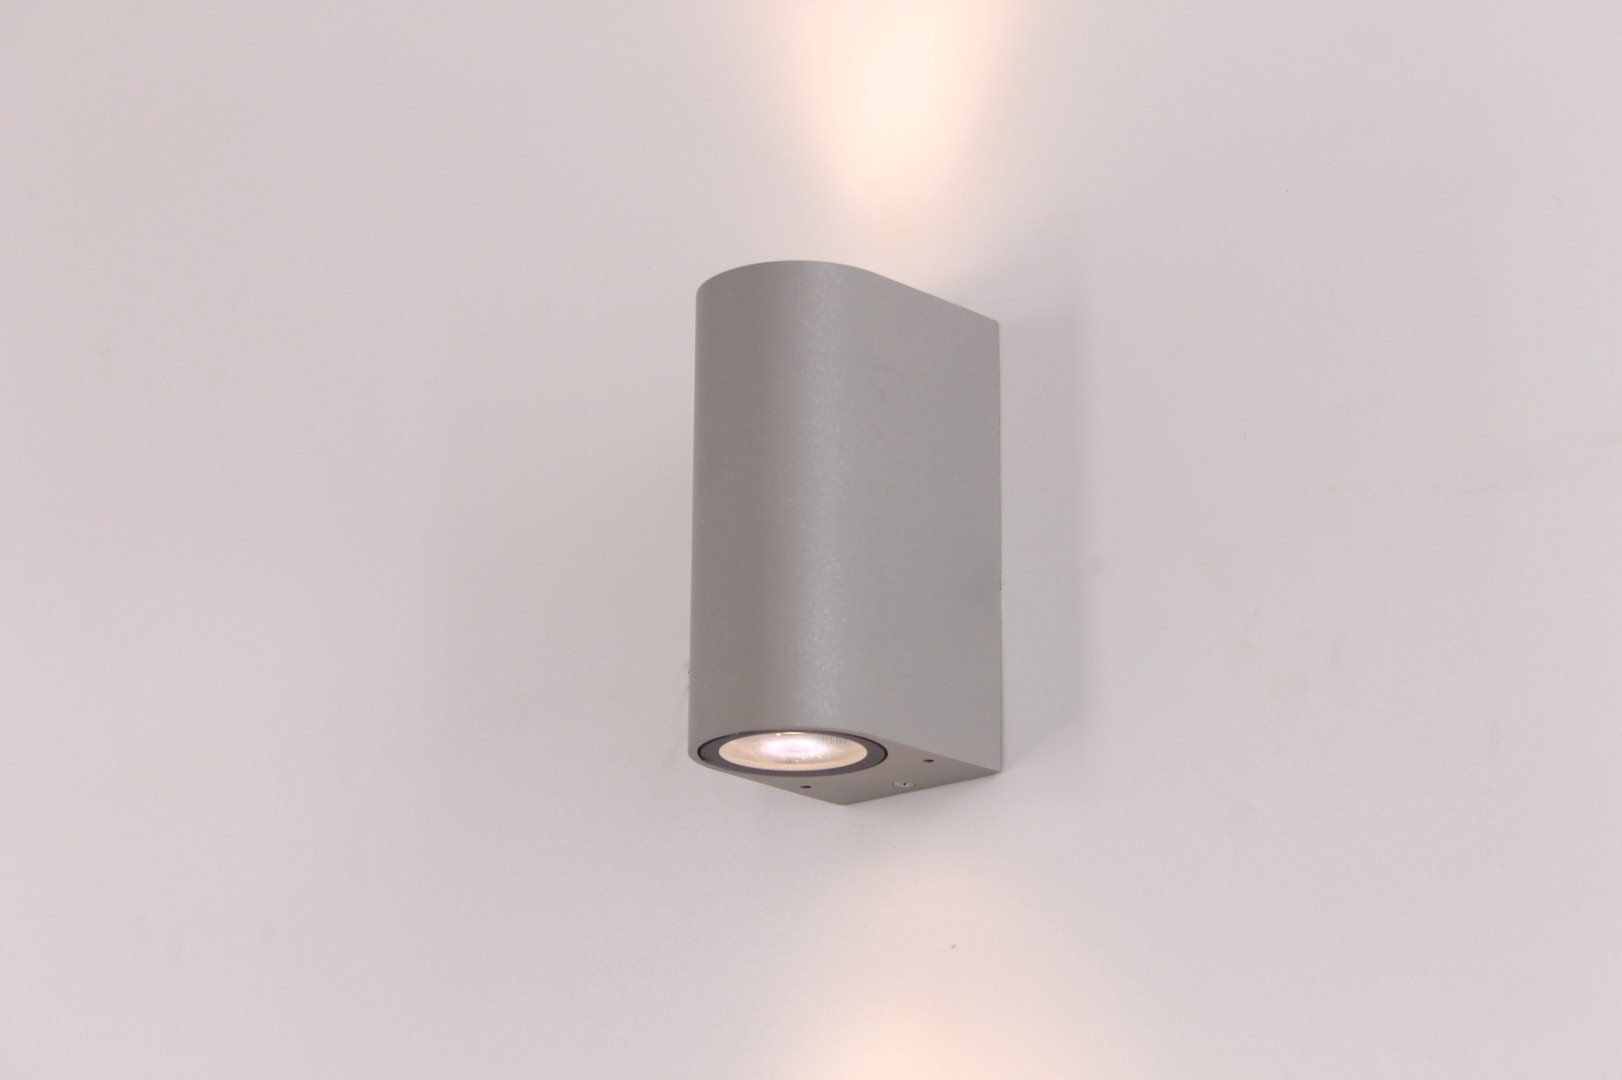 Buiten wandlamp zilver up / down LED lamp